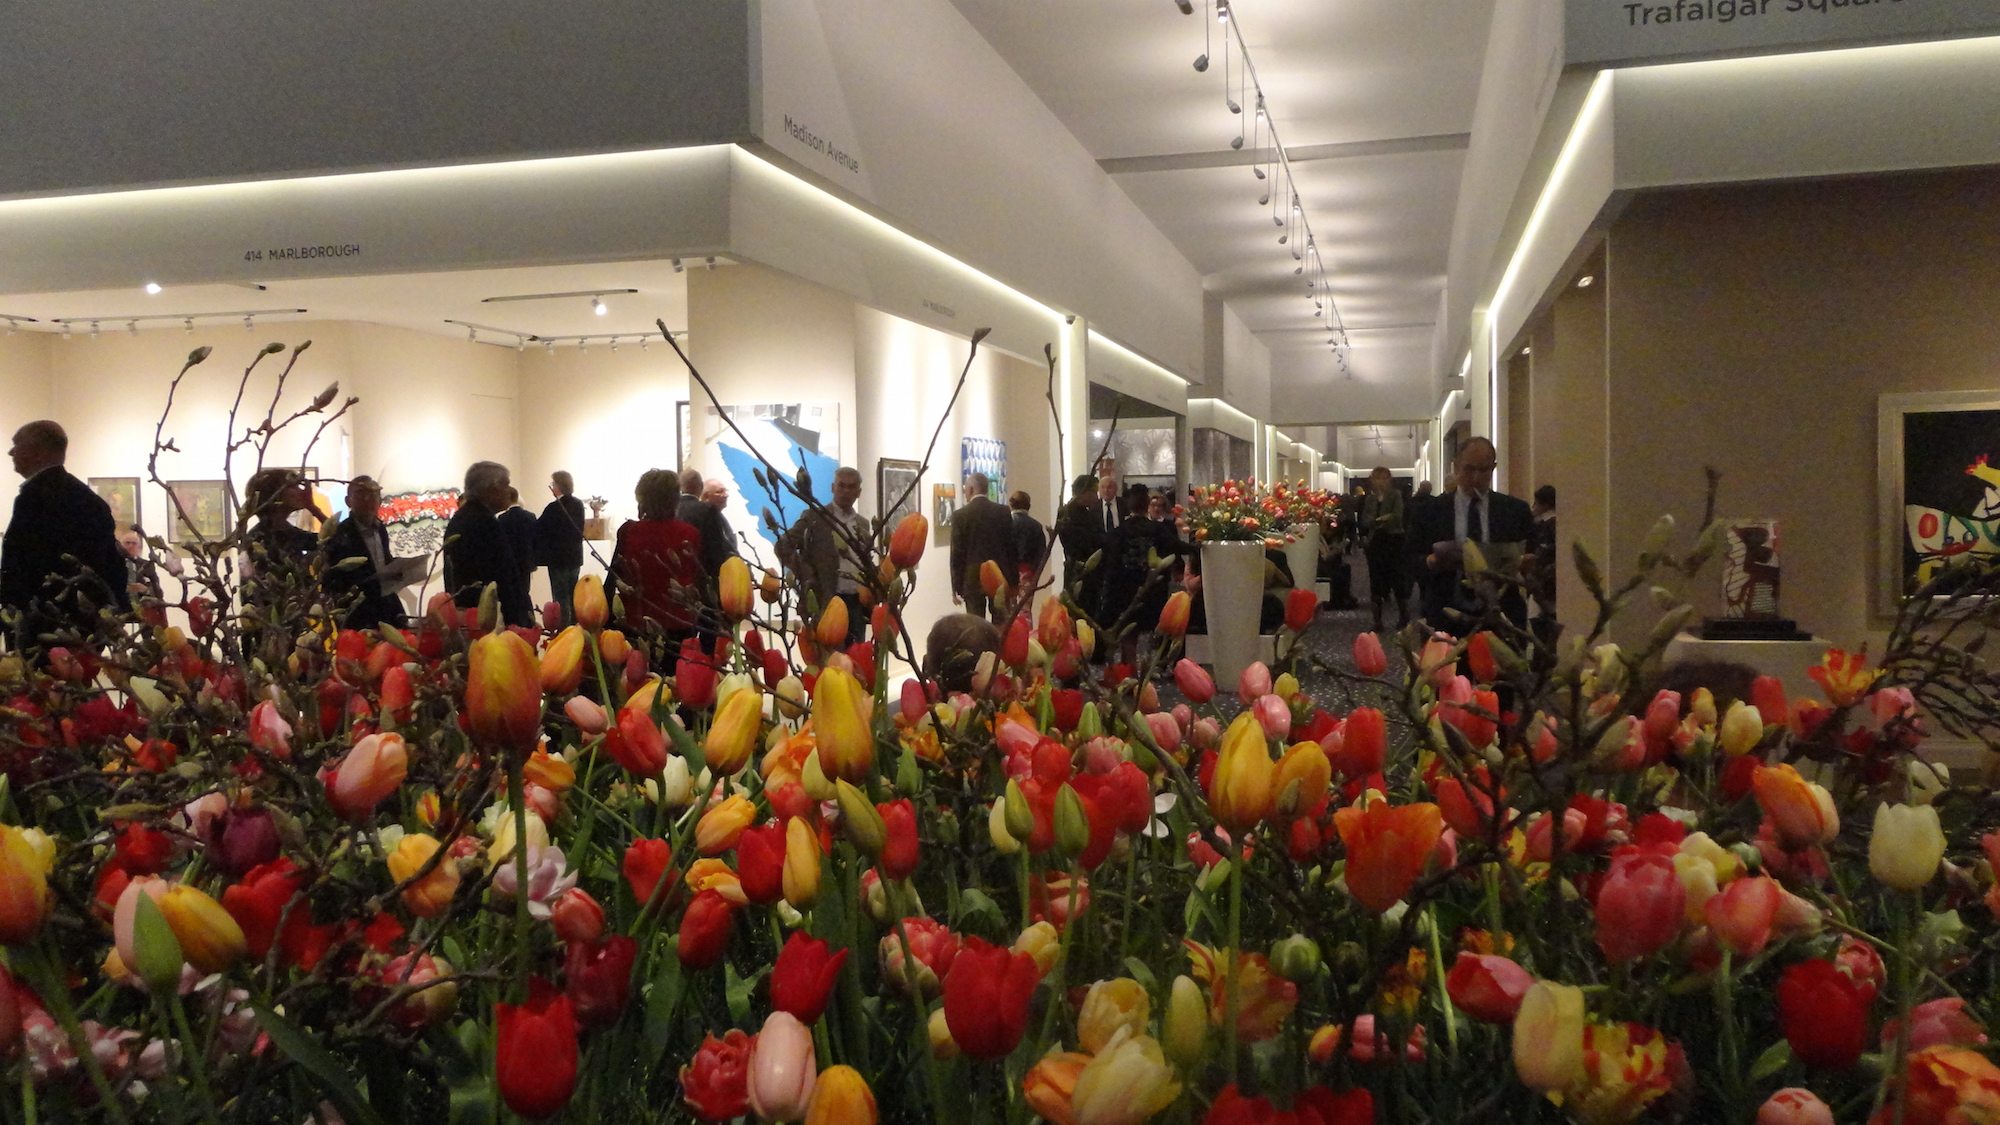 The art market blossoms: The aisles of the European Fine Art Fair in Maastricht were once again blooming with traditional tulips at this year's event. Image Auction Central News.